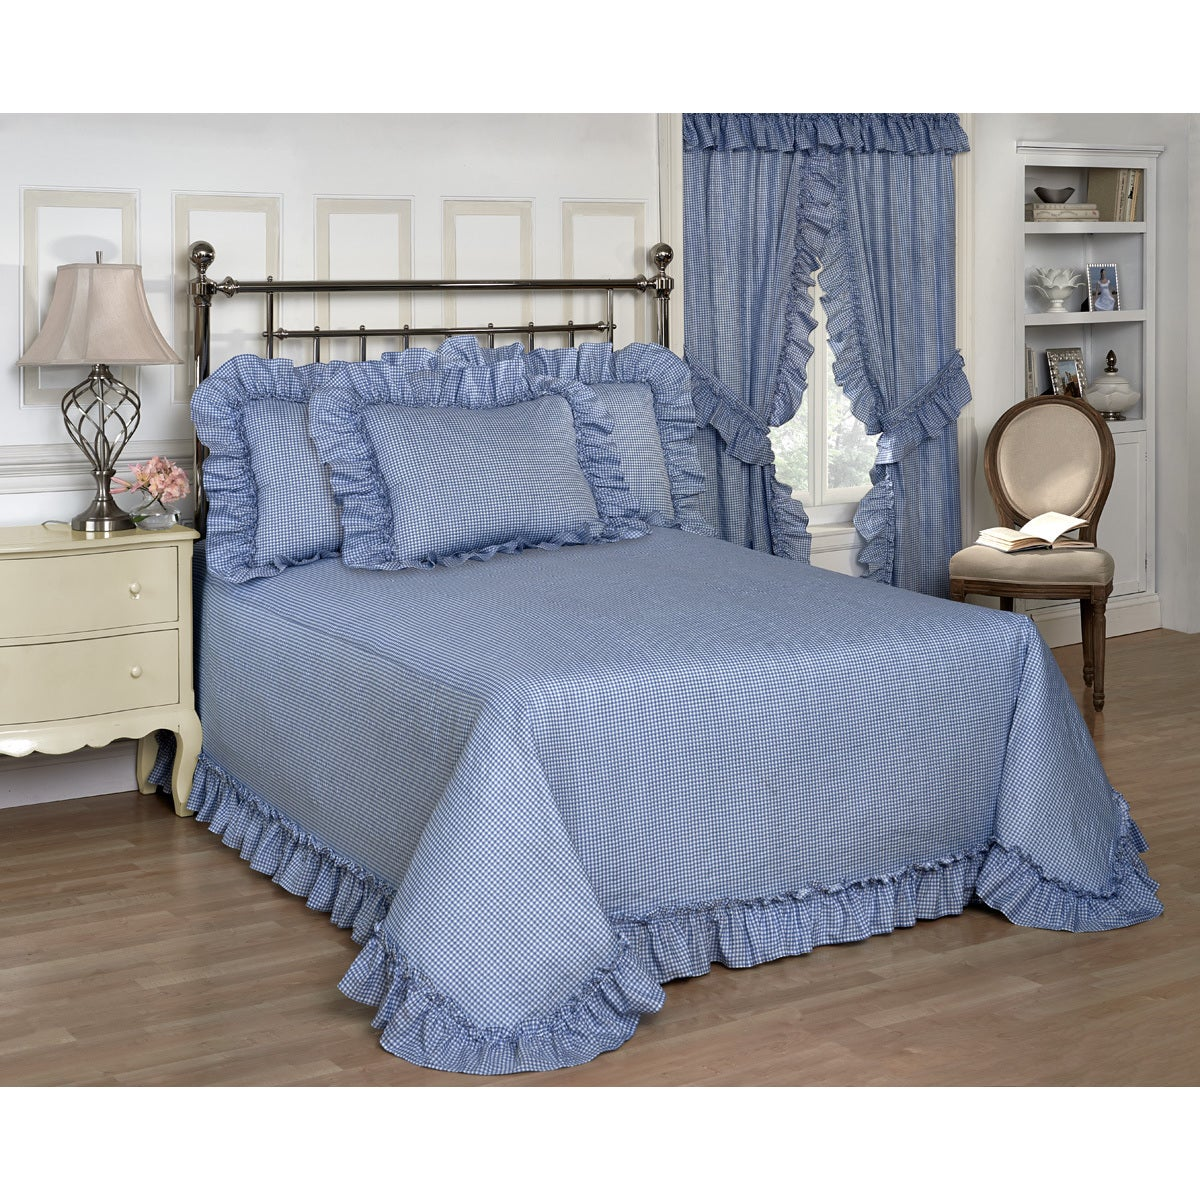 Madison The Gray Barn Crooked Creek Blue Gingham Bedsprea...